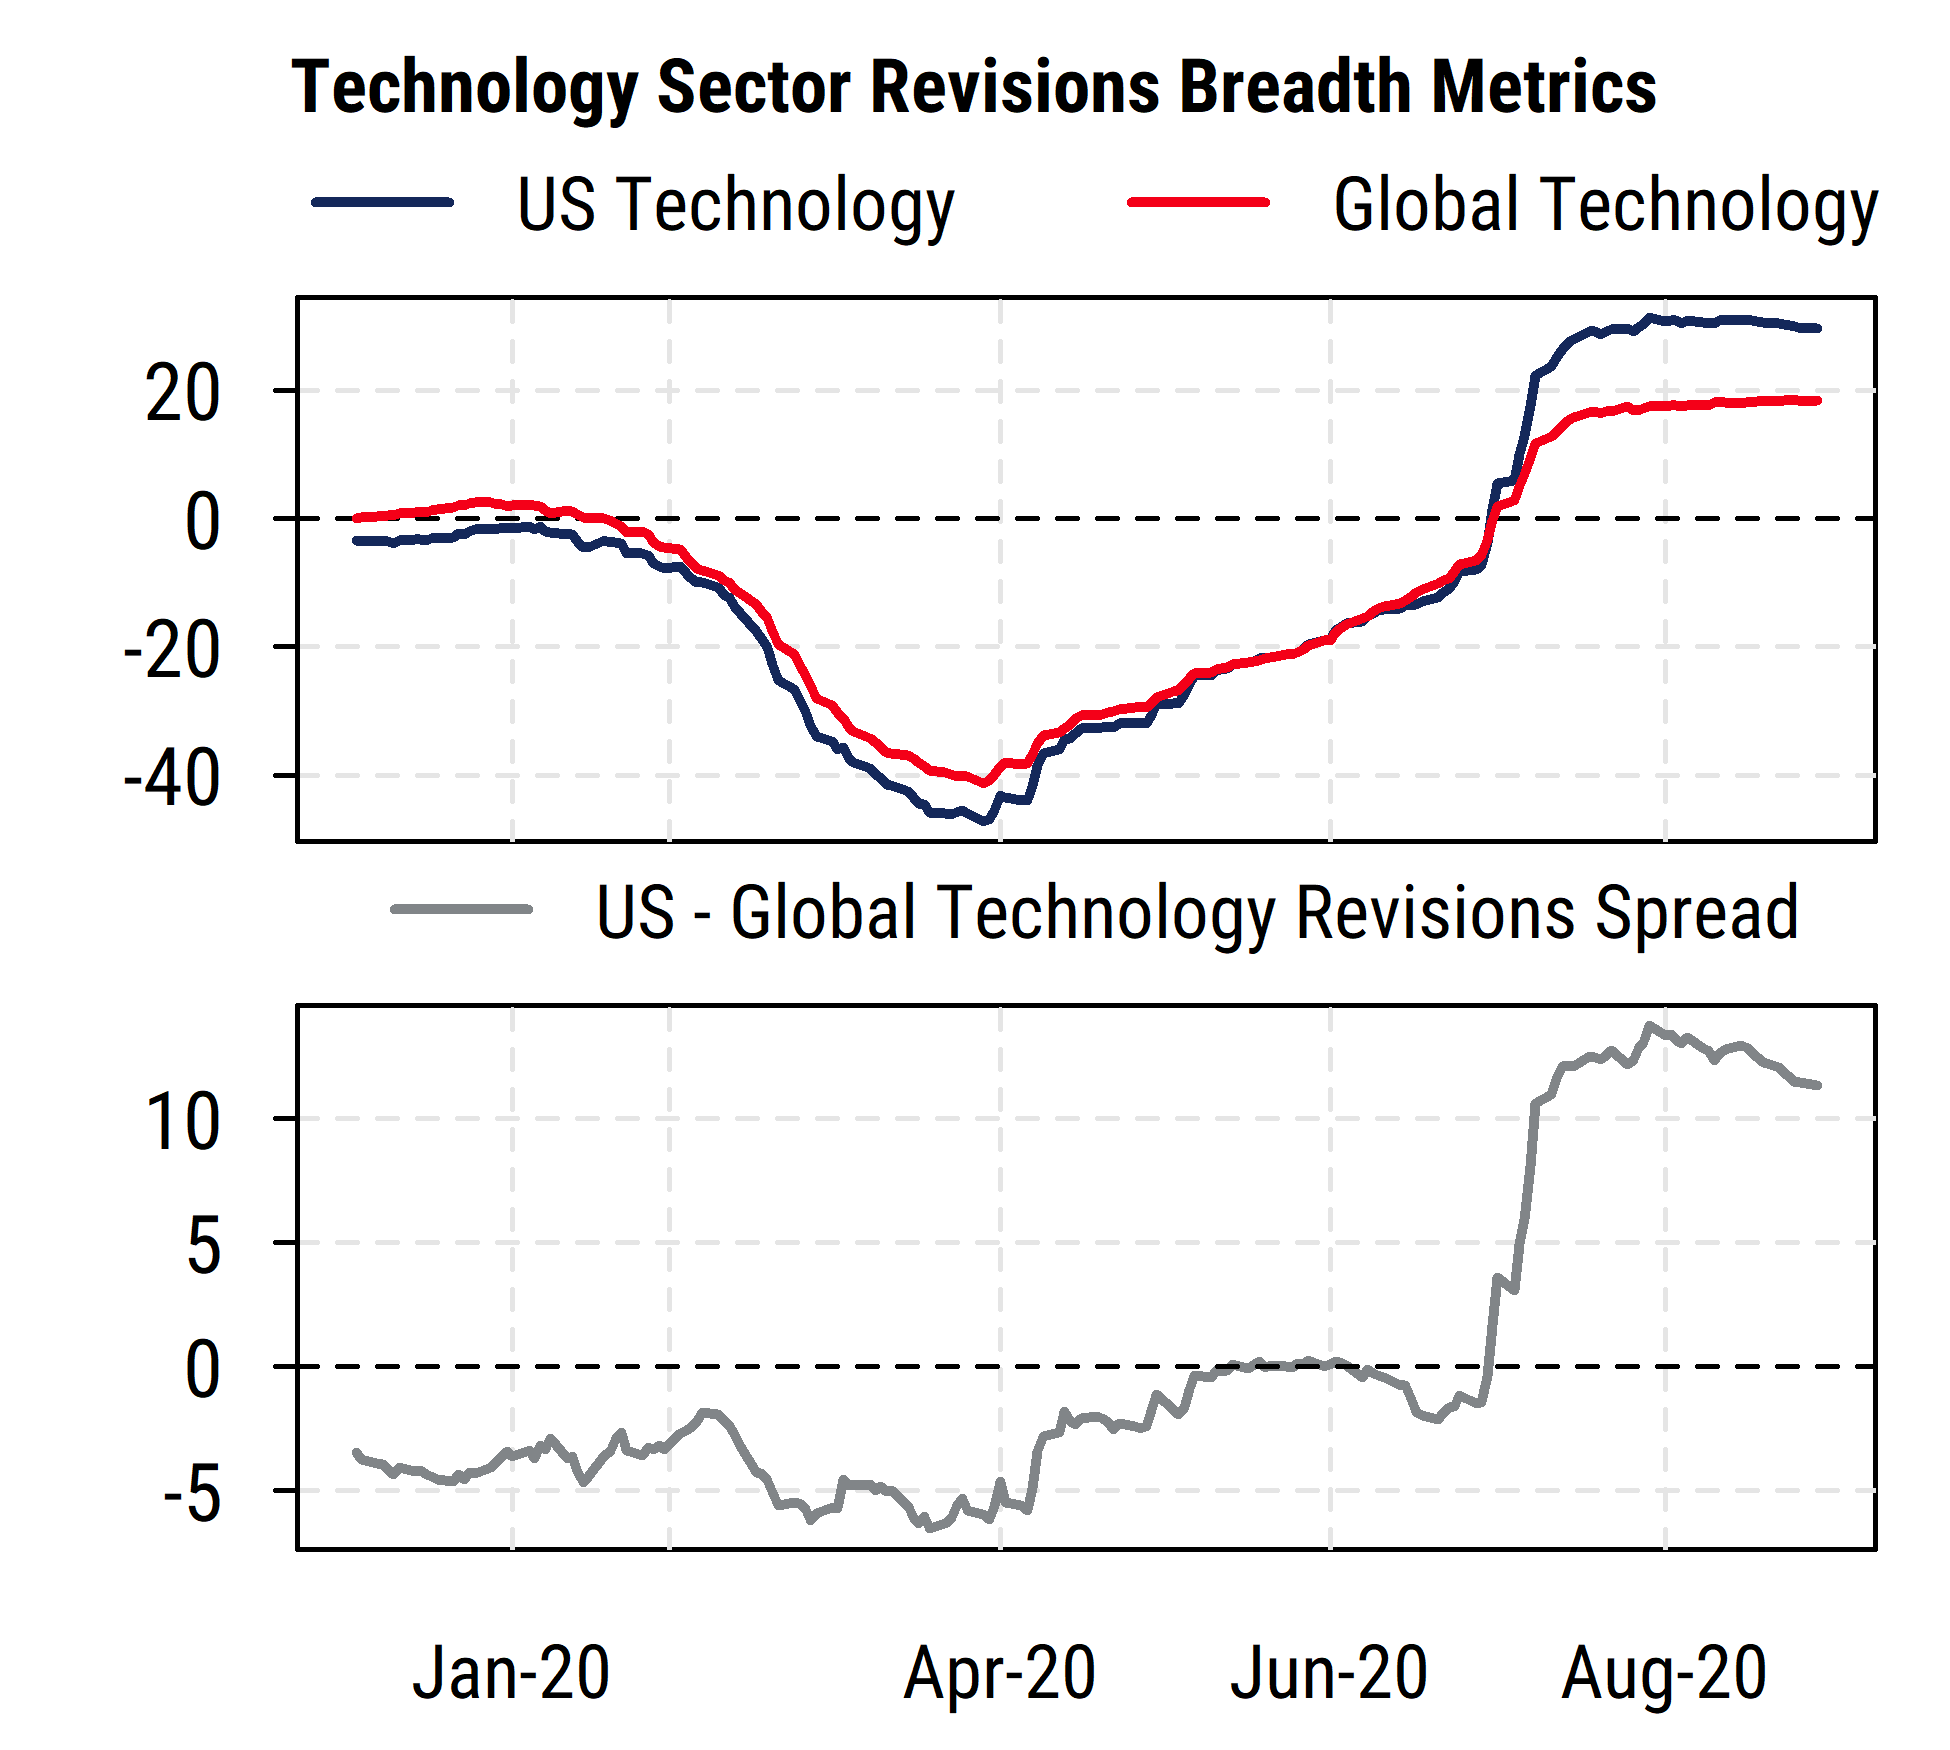 Technology Sector Revisions Breadth Metrics